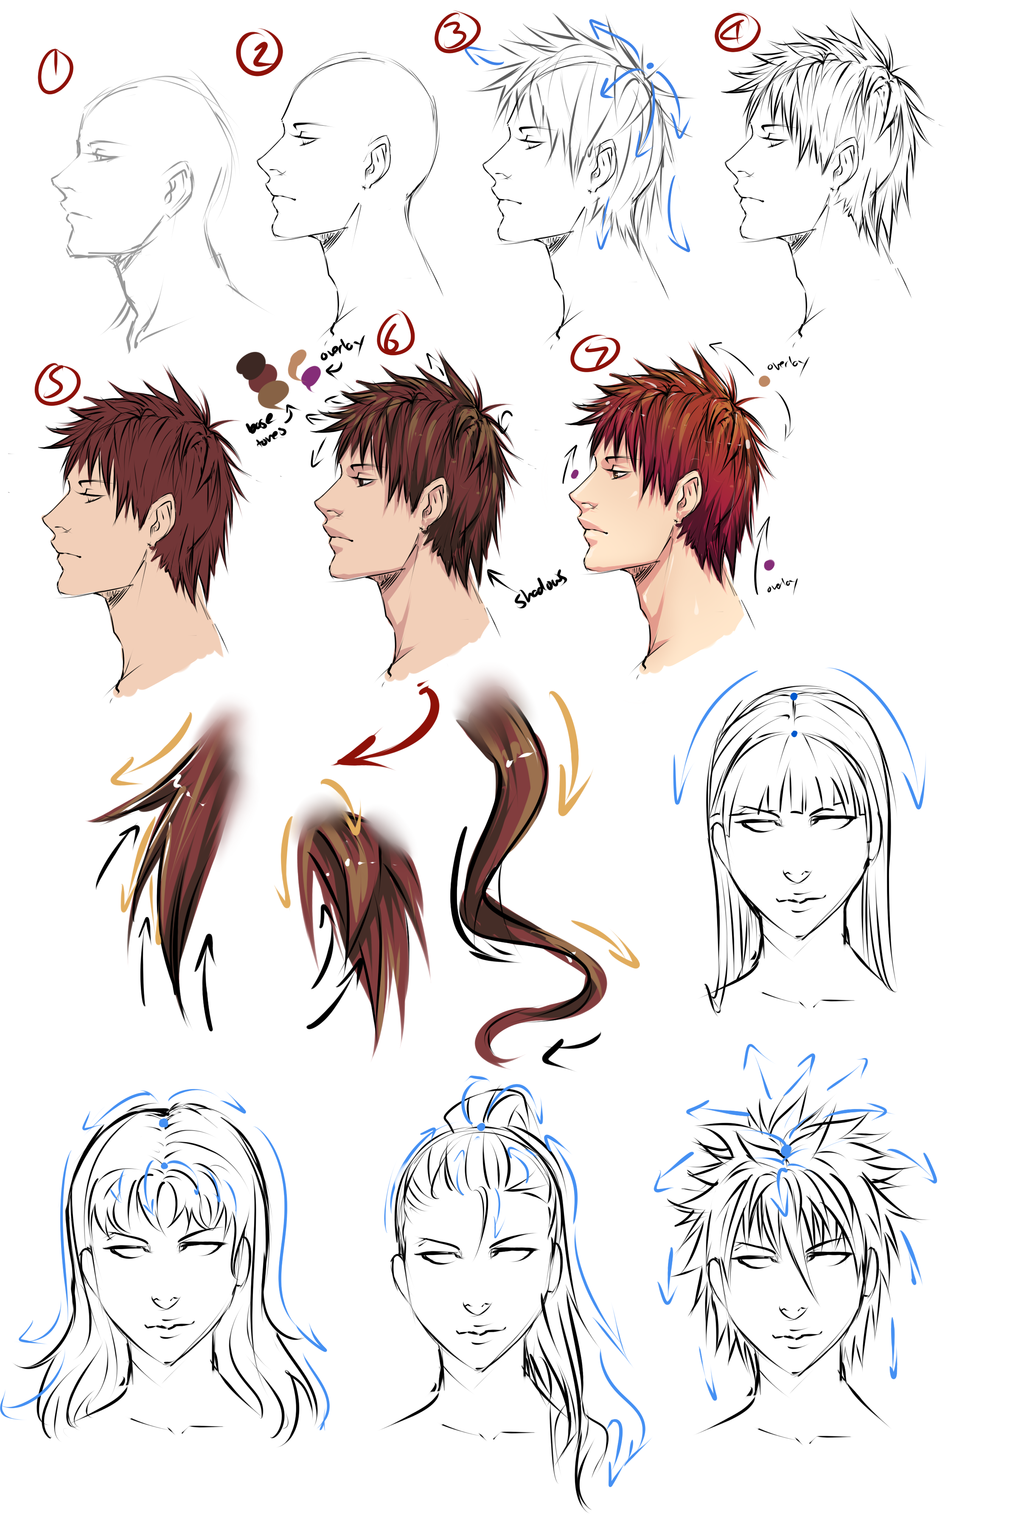 Boy Hair Drawing At Getdrawings Com Free For Personal Use Boy Hair